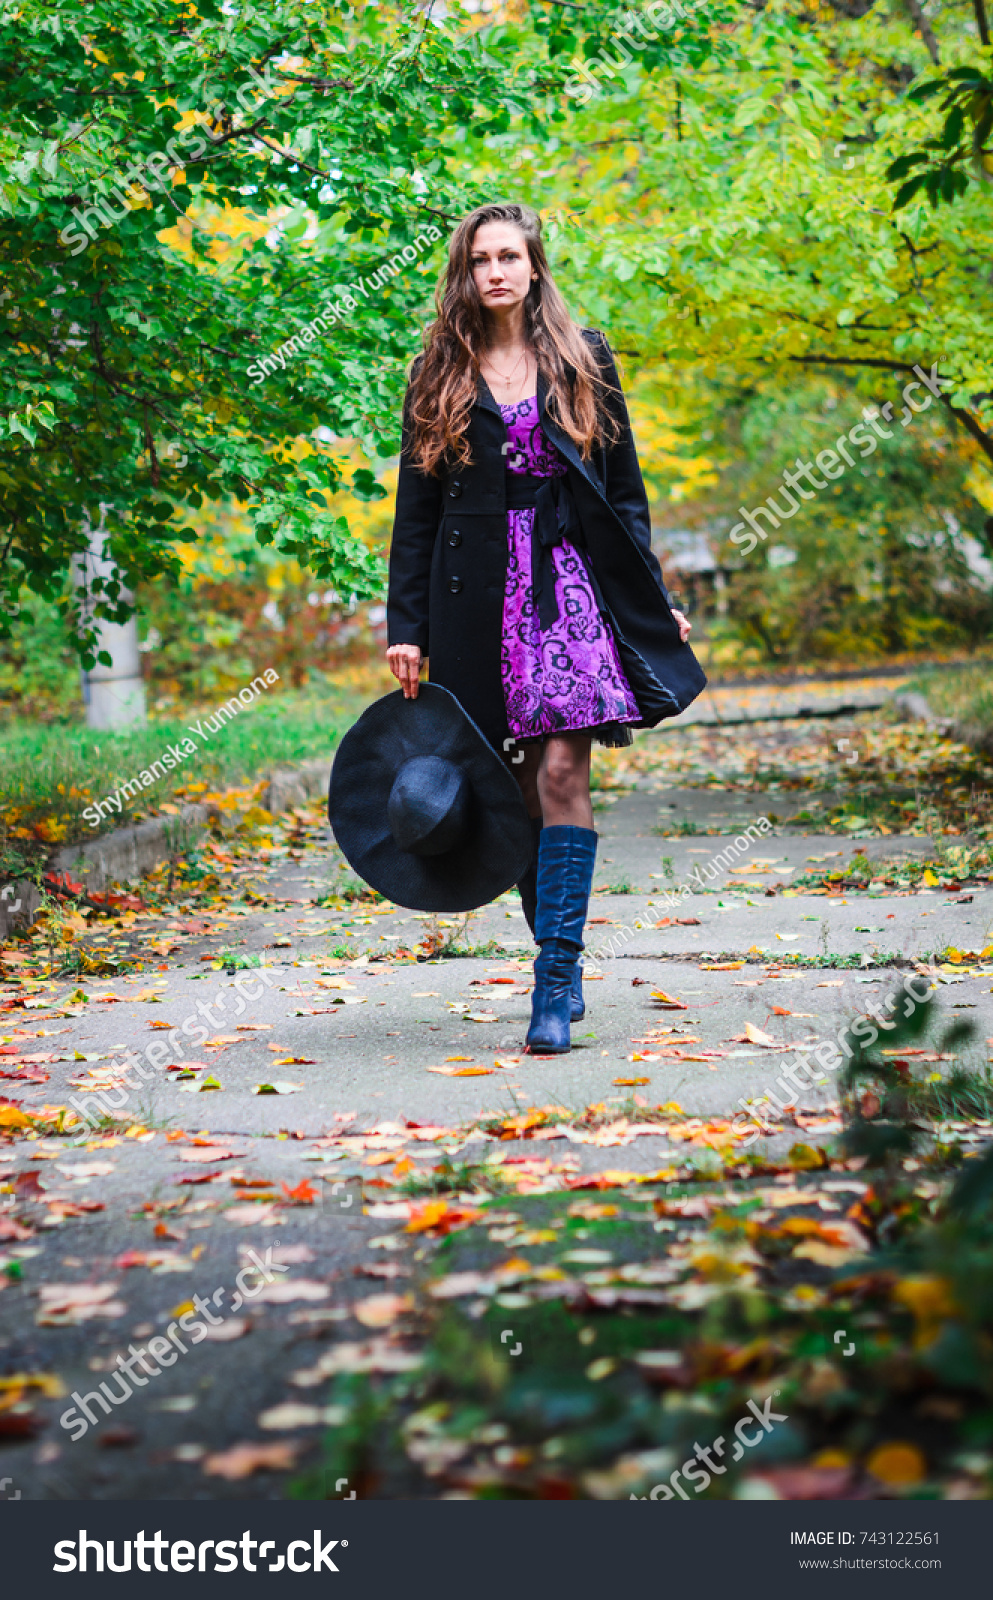 c858dccbf Young Girl Classic Black Coat Blue Stock Photo (Edit Now) 743122561 ...